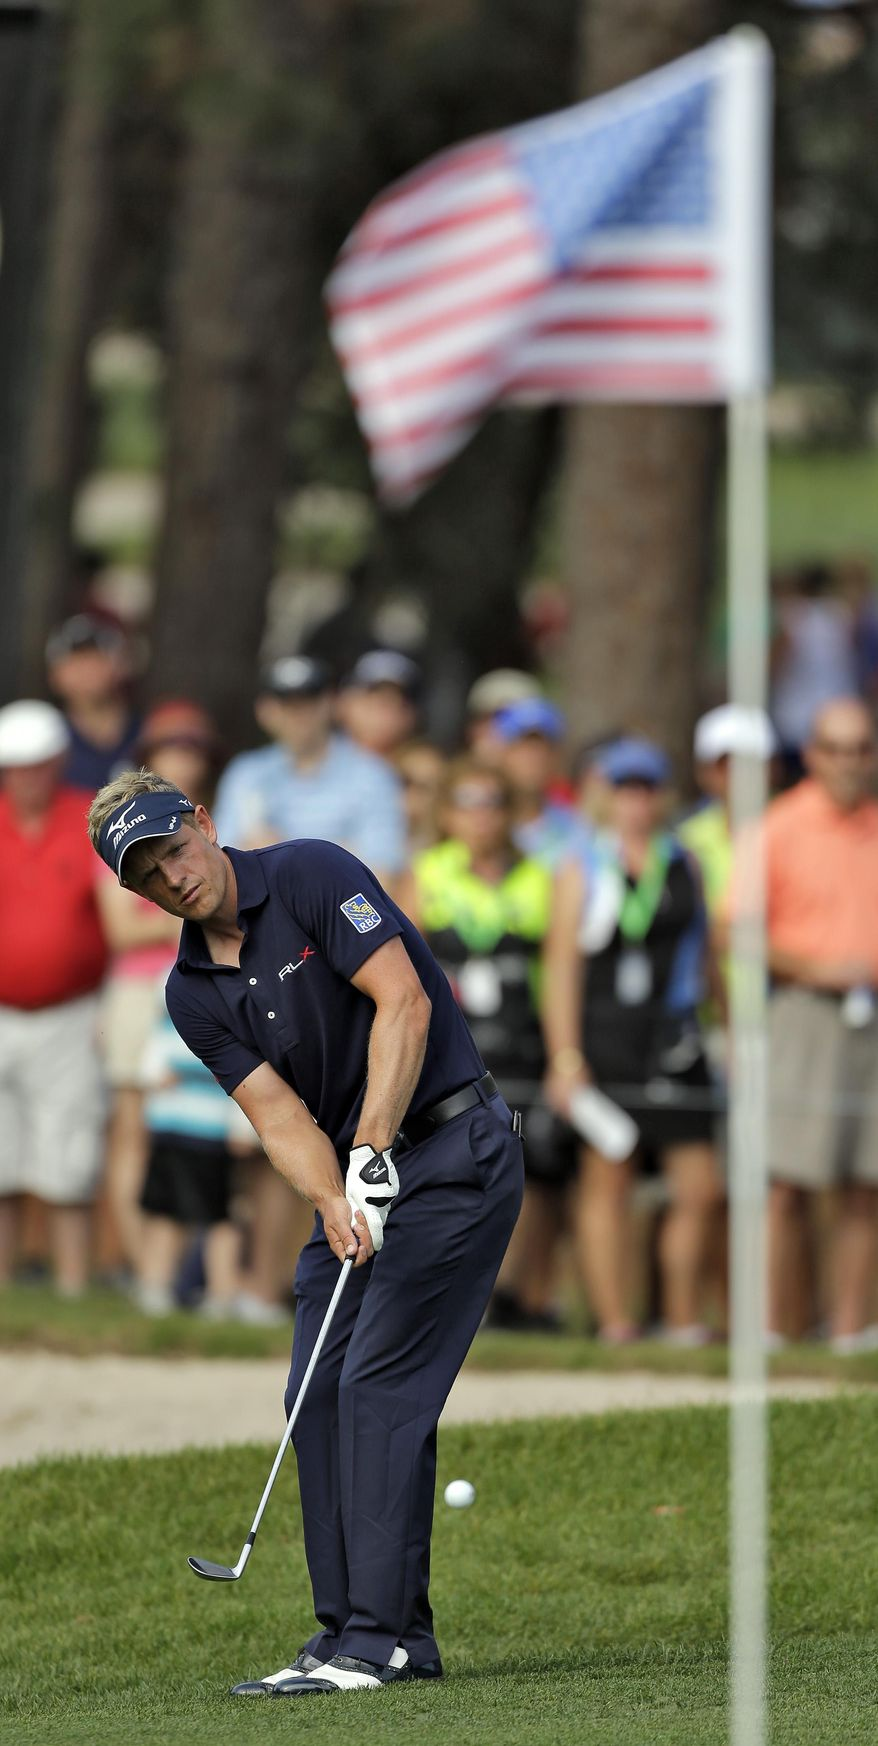 Luke Donald, of England, chips onto the 16th green during the final round of the Valspar Championship golf tournament at Innisbrook, Sunday, March 16, 2014, in Palm Harbor, Fla. Donald finished tied for fourth. (AP Photo/Chris O'Meara)